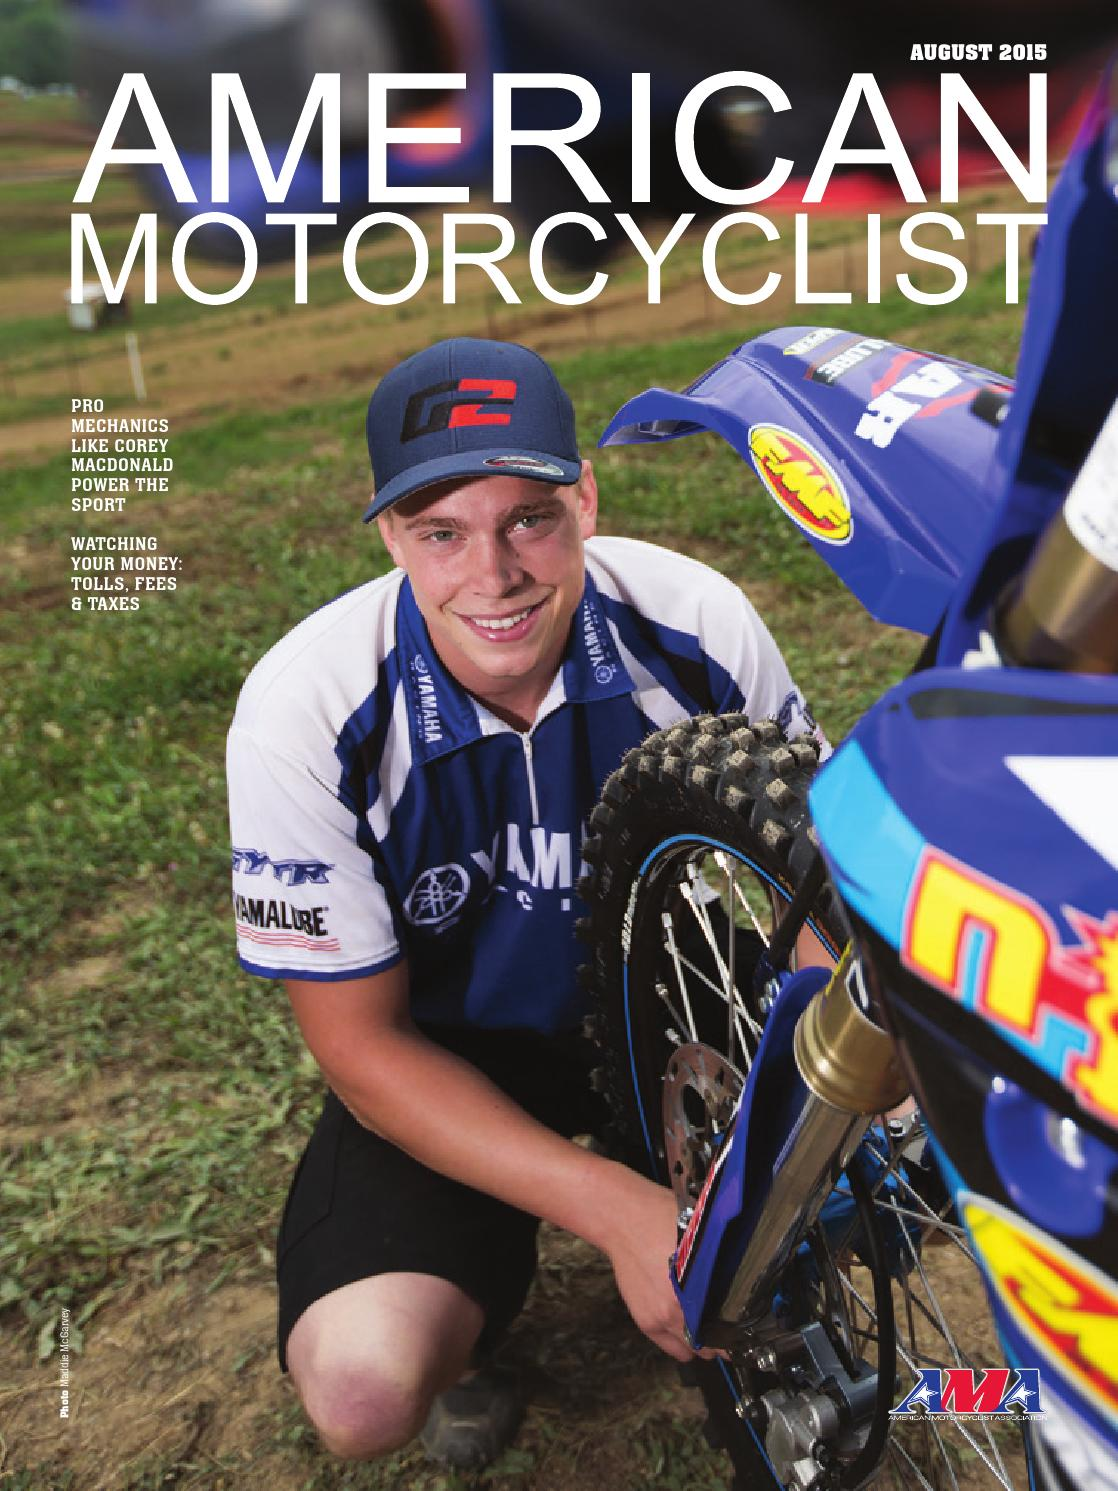 marvelous american motorcyclist #4: American Motorcyclist August 2015 Dirt (preview version) by American  Motorcyclist Association - issuu